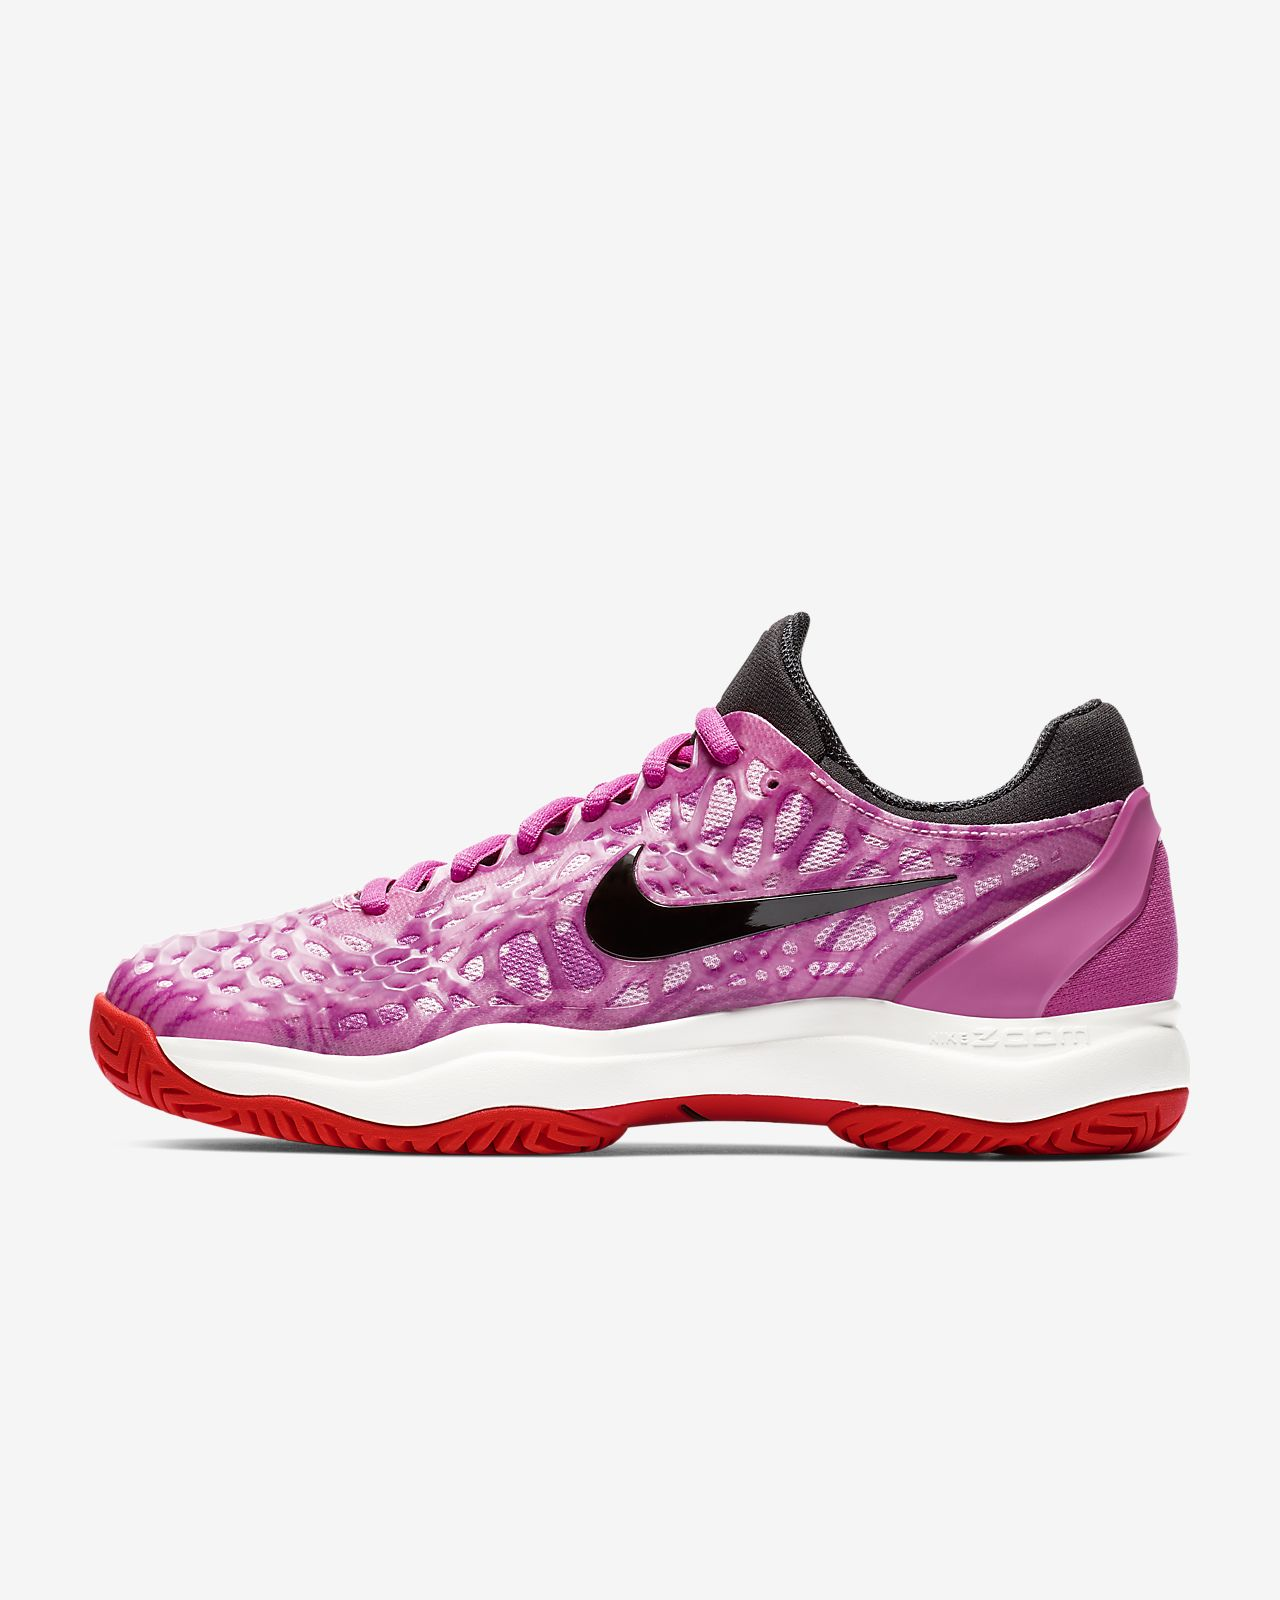 NikeCourt Zoom Cage 3 Women s Hard Court Tennis Shoe. Nike.com SA 914aa63e2